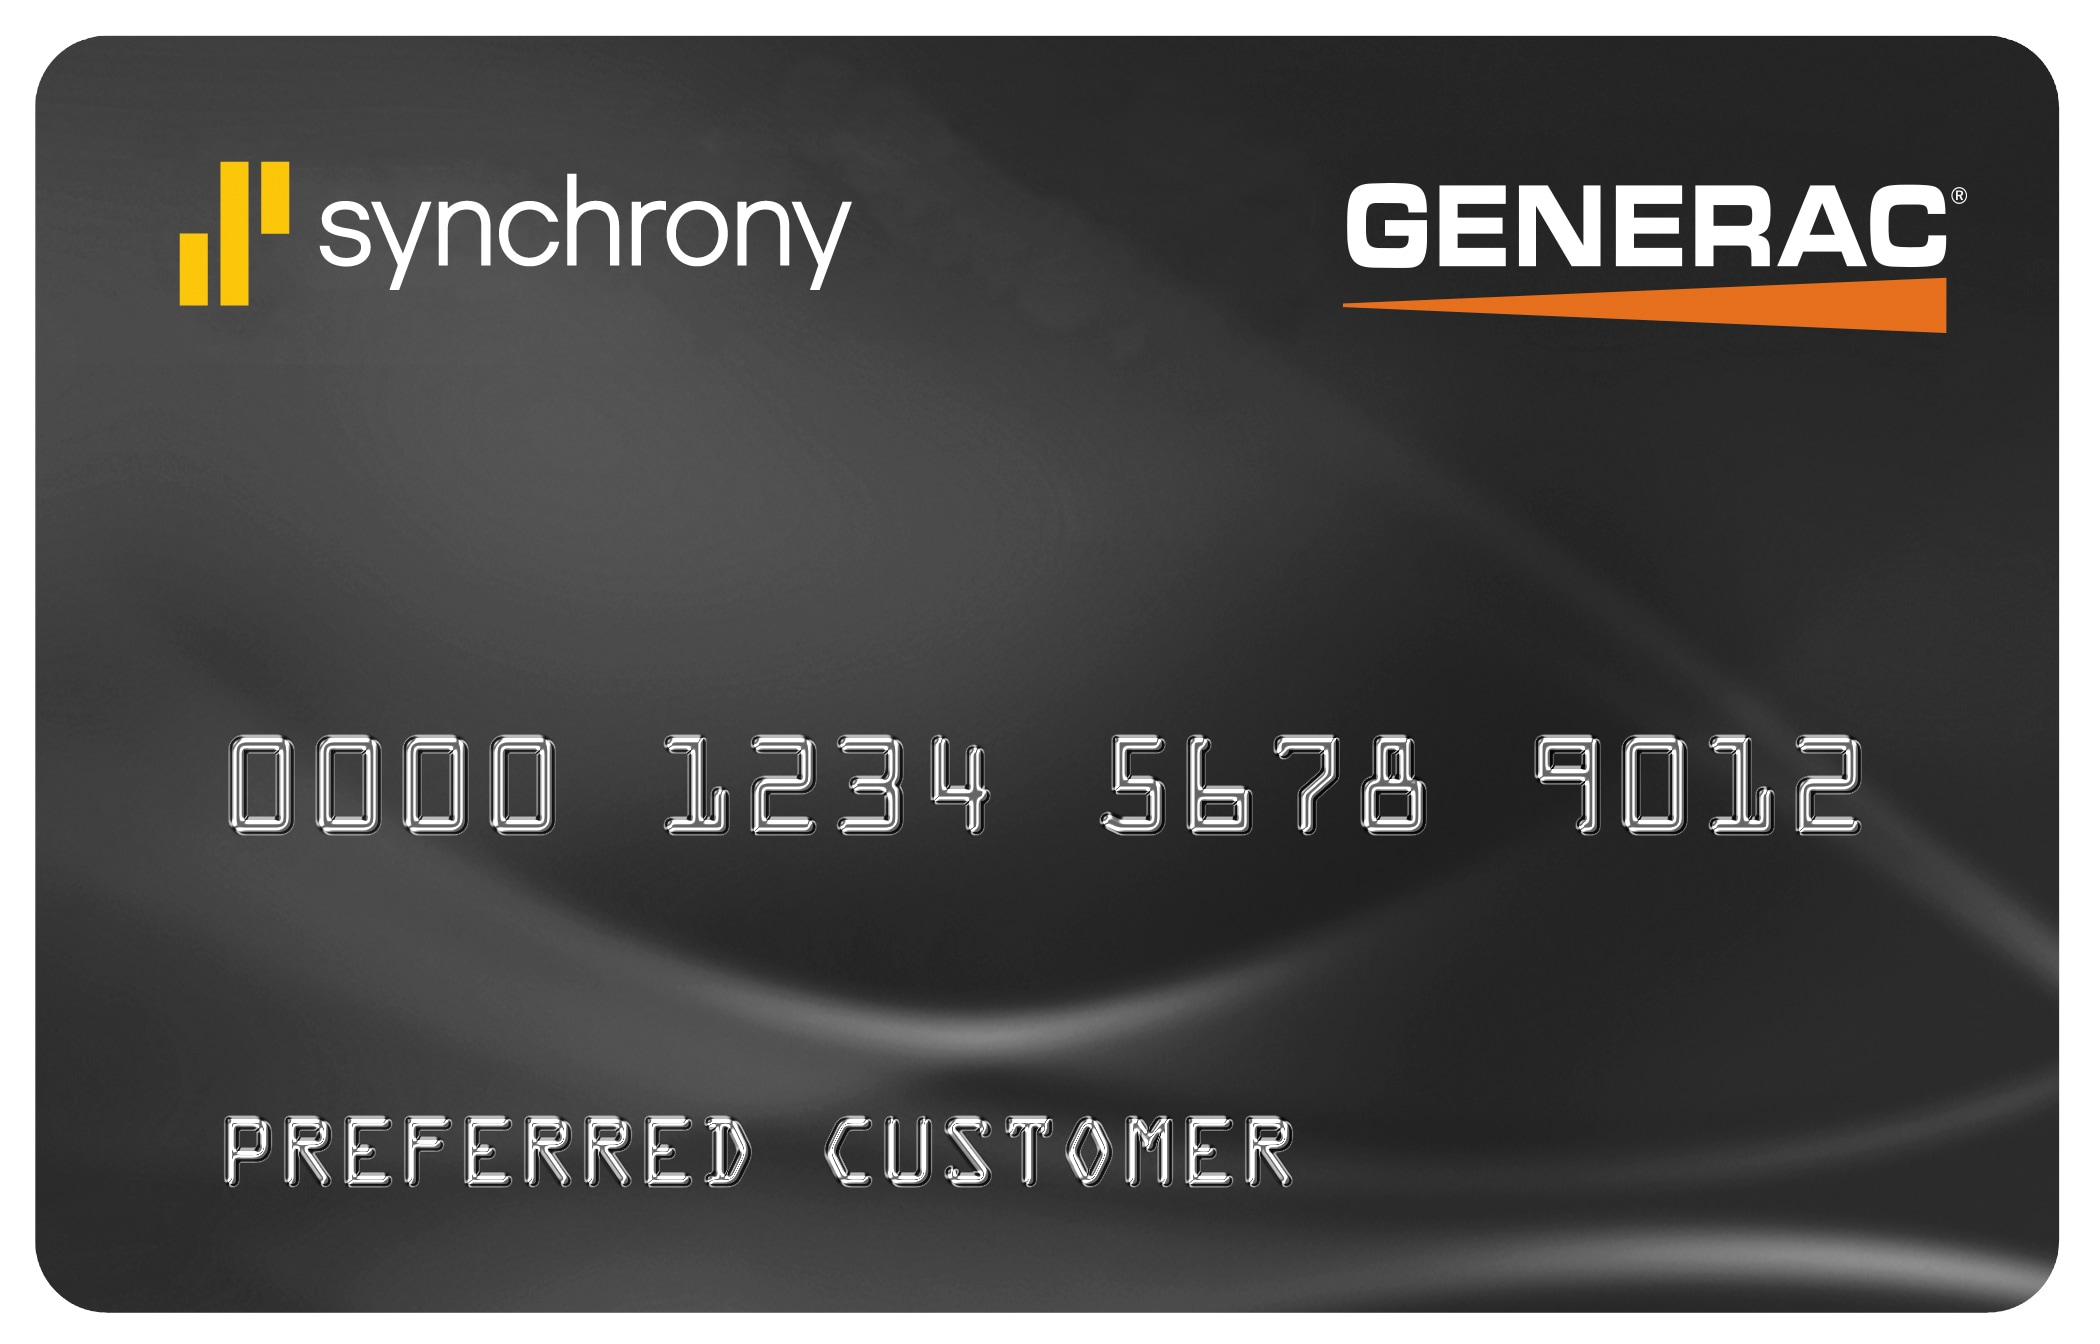 Synchrony Financing Now Available On Generac How To Finance A Generac Generator